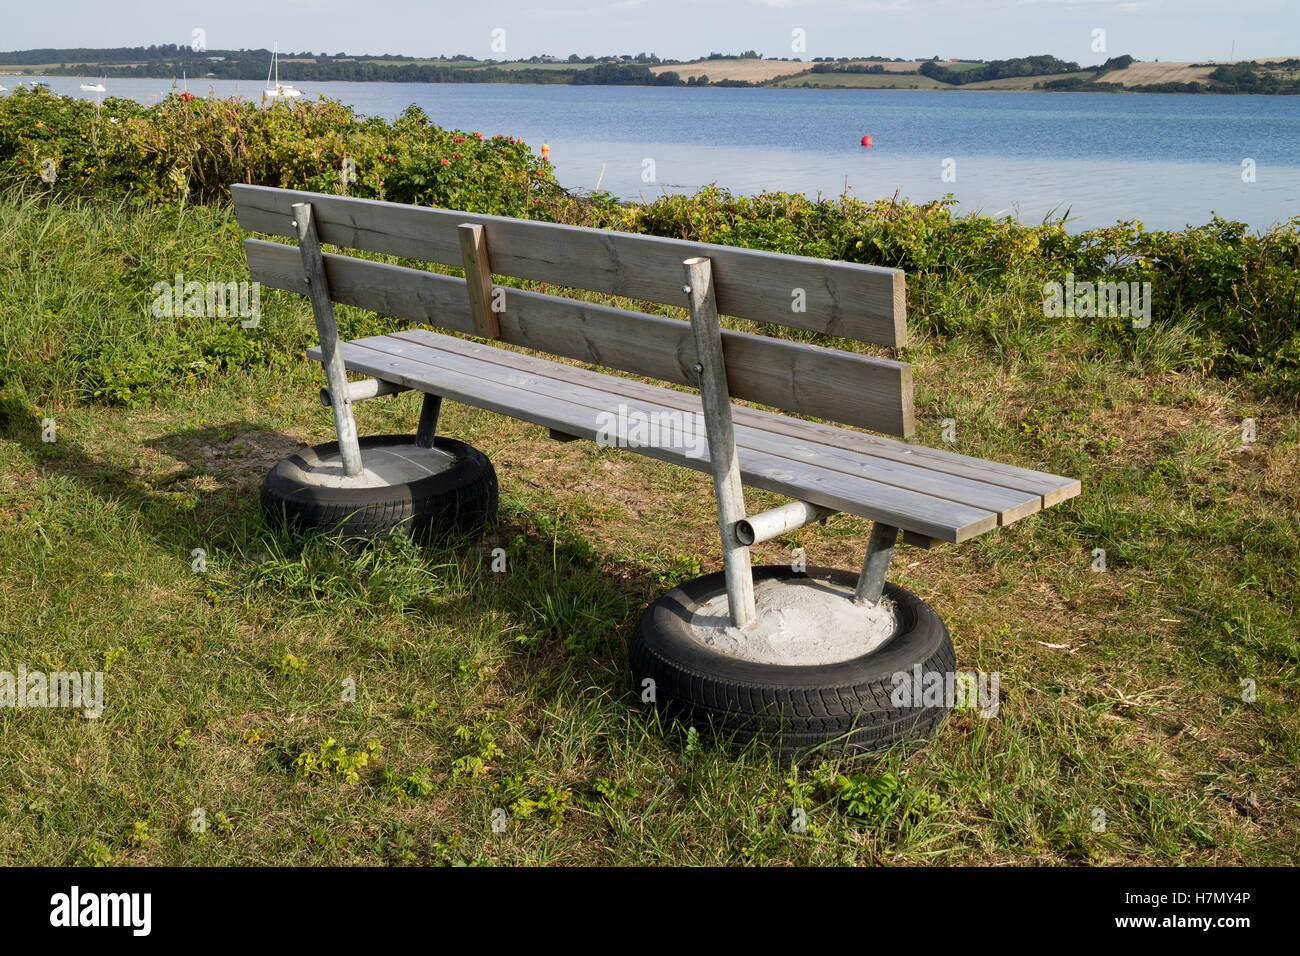 Bench on recycled tires in Broager near the sea, Denmark - Stock Image